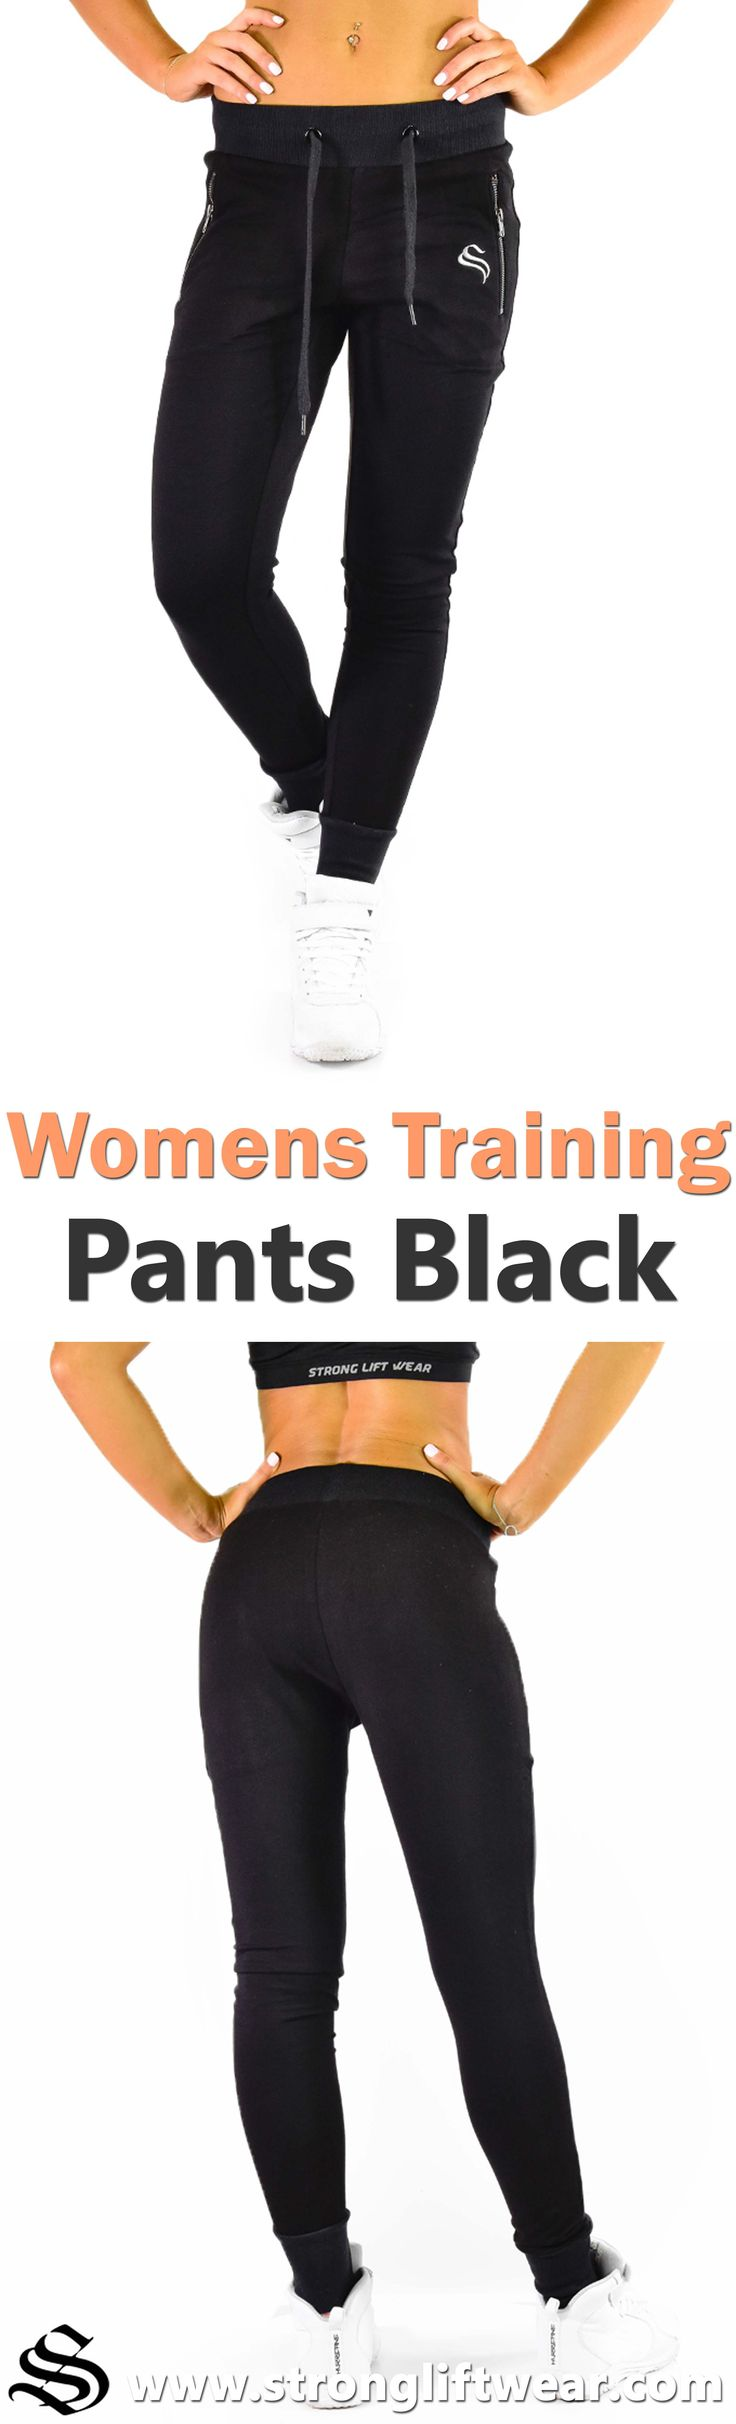 Womens Training Pants - Black │gym wear │fitness wear │fitness clothing │fitness │outfits │workout dress │gym outfits │workout outfits │shorts │hoodie │singlets │pants #gymwear #fitnesswear #fitnessclothing #fitness #outfits #workoutdress #gymoutfits #workoutoutfits #shorts #hoodie #singlets #pants